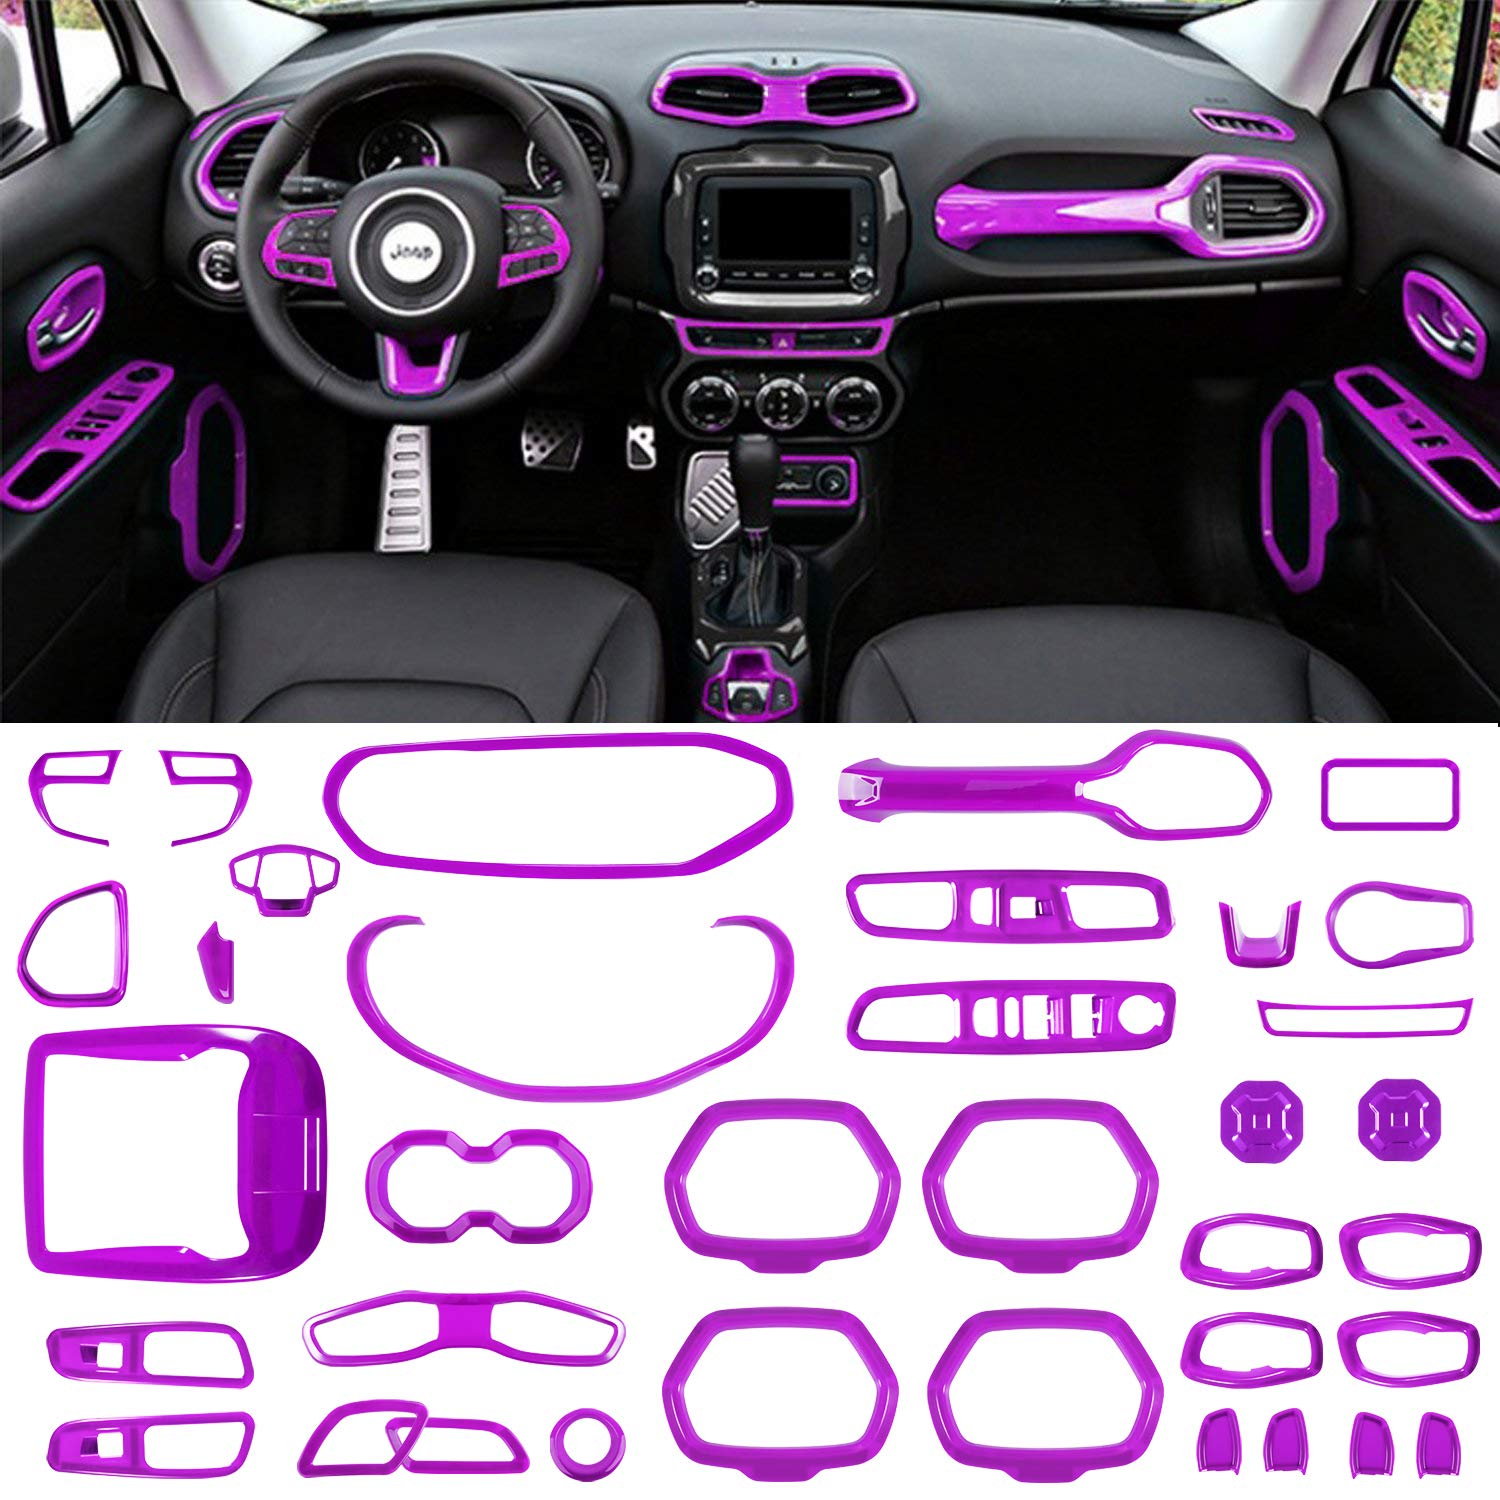 Danti 36Pcs Car Interior Accessories Decoration Cover Air Conditioning Vent & Door Speaker & Water Cup Holder & Headlight Switch & Window Lift Button Covers for Jeep Renegade 2015-2018 (Purple)